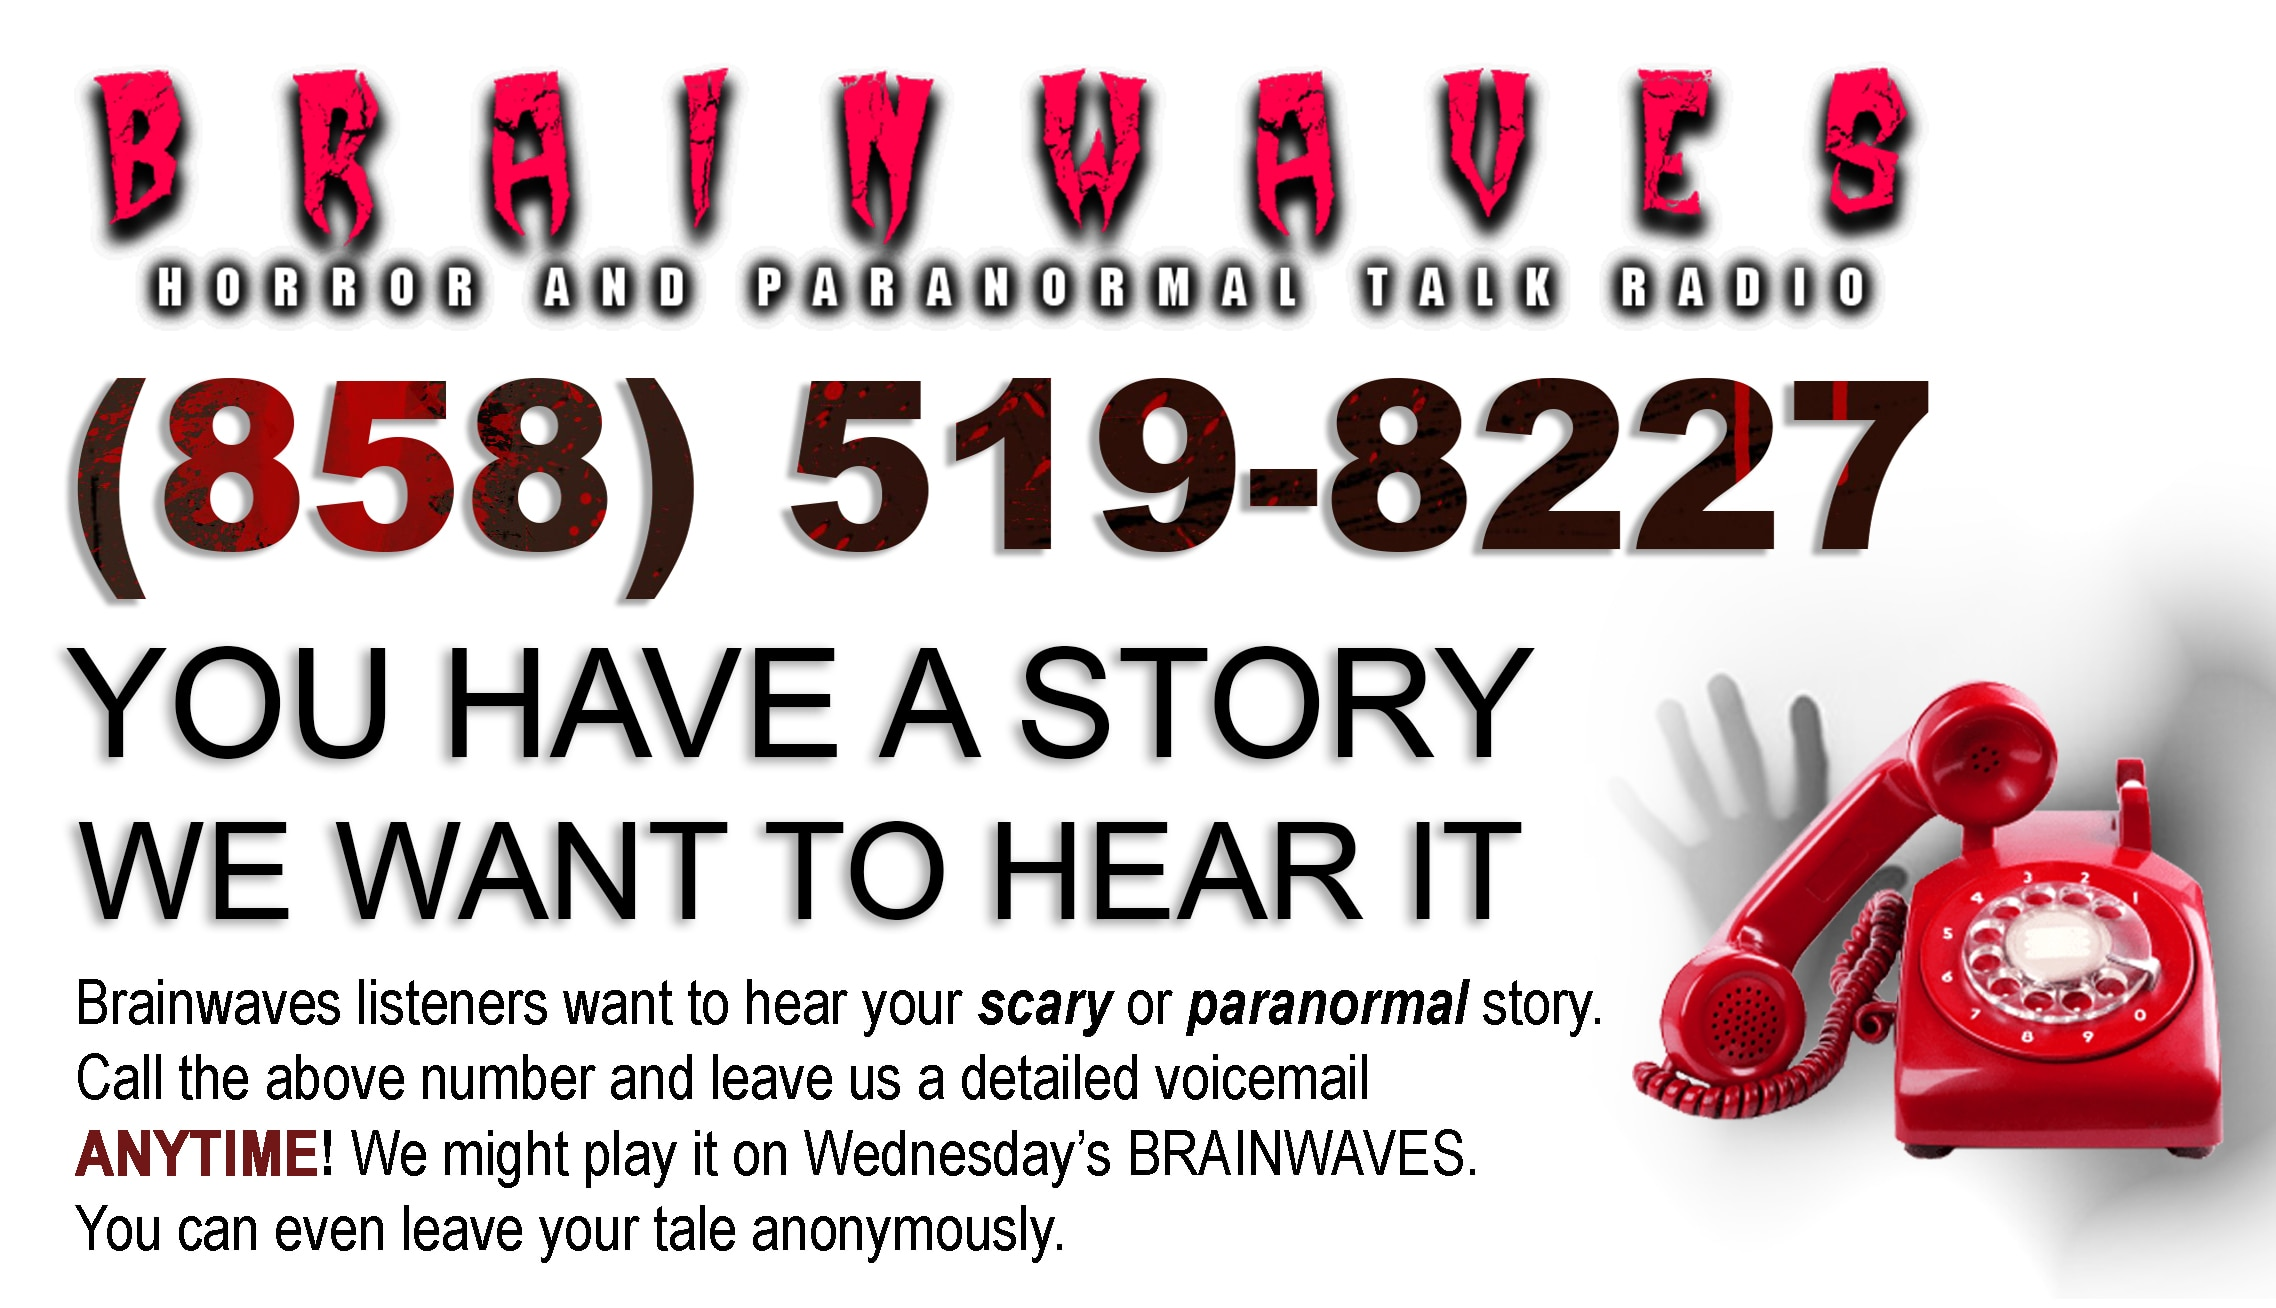 CallBrainwaves v02 - #Brainwaves Episode 88: Wretched, Lead Zombie of Grave Robber - LISTEN NOW!